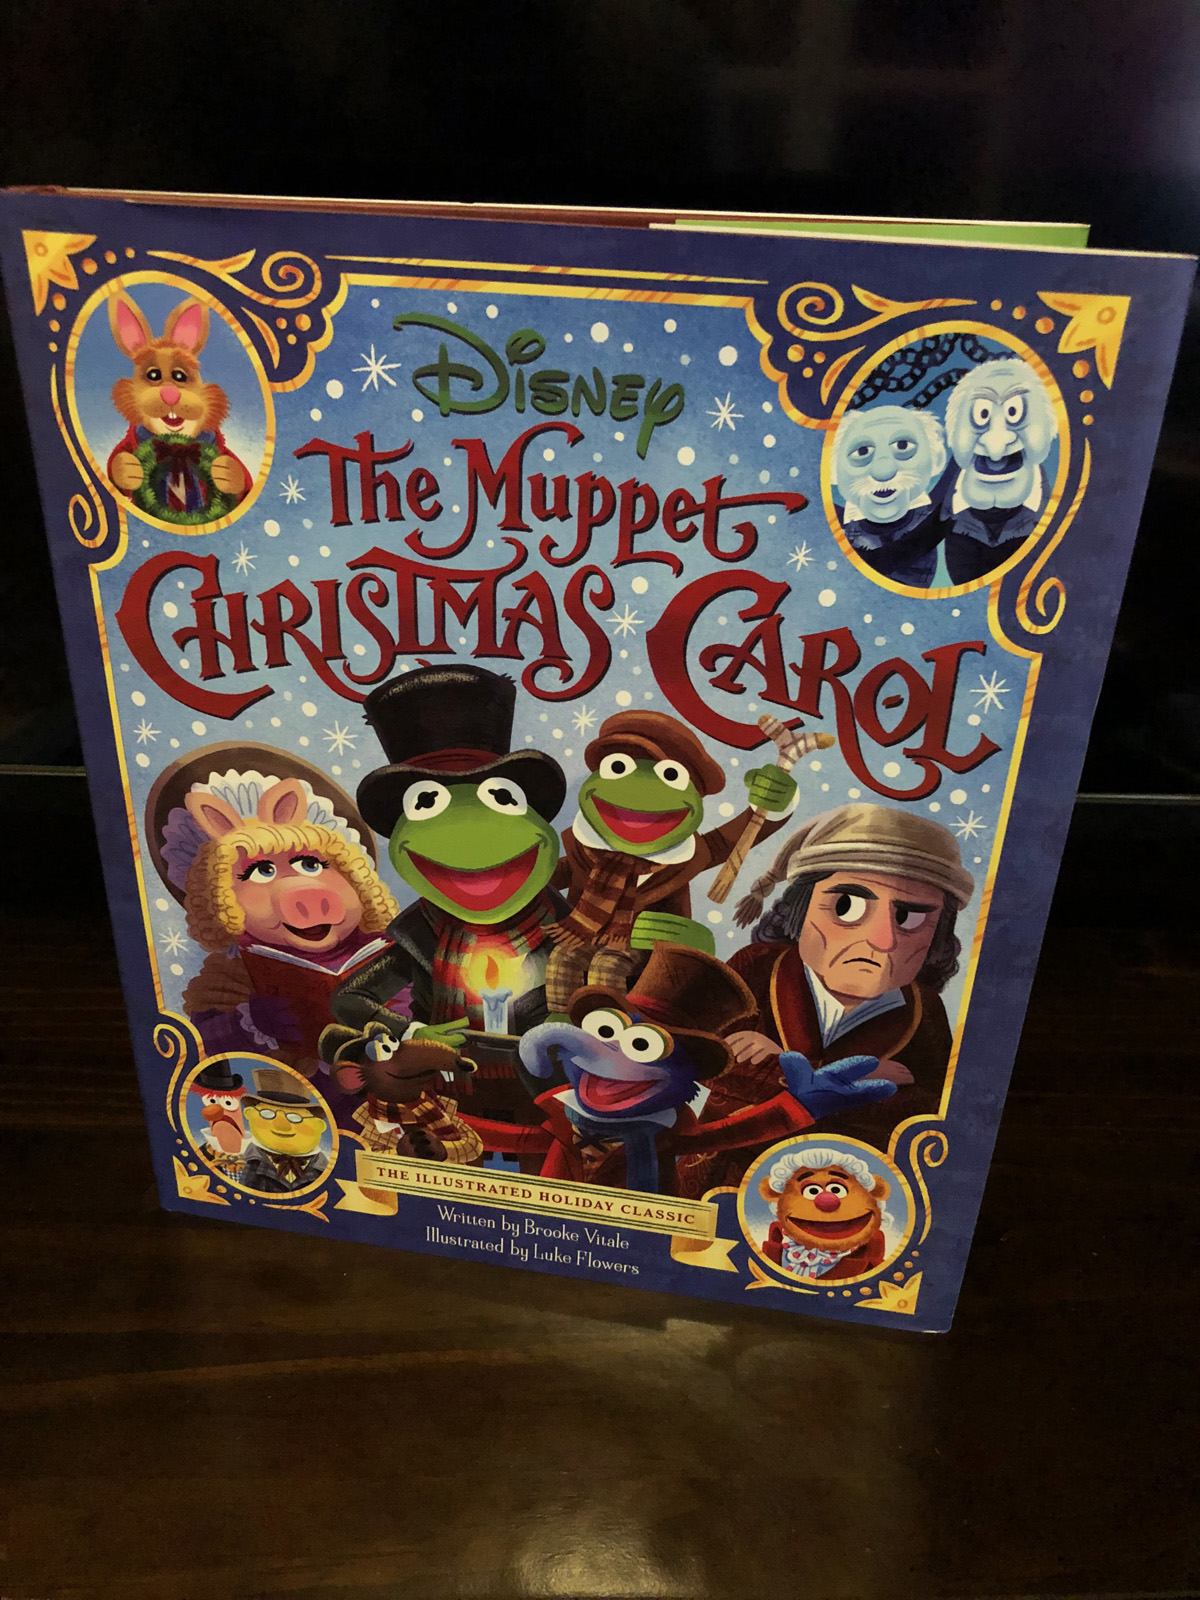 Muppet Christmas Carol: The Illustrated Holiday Classic